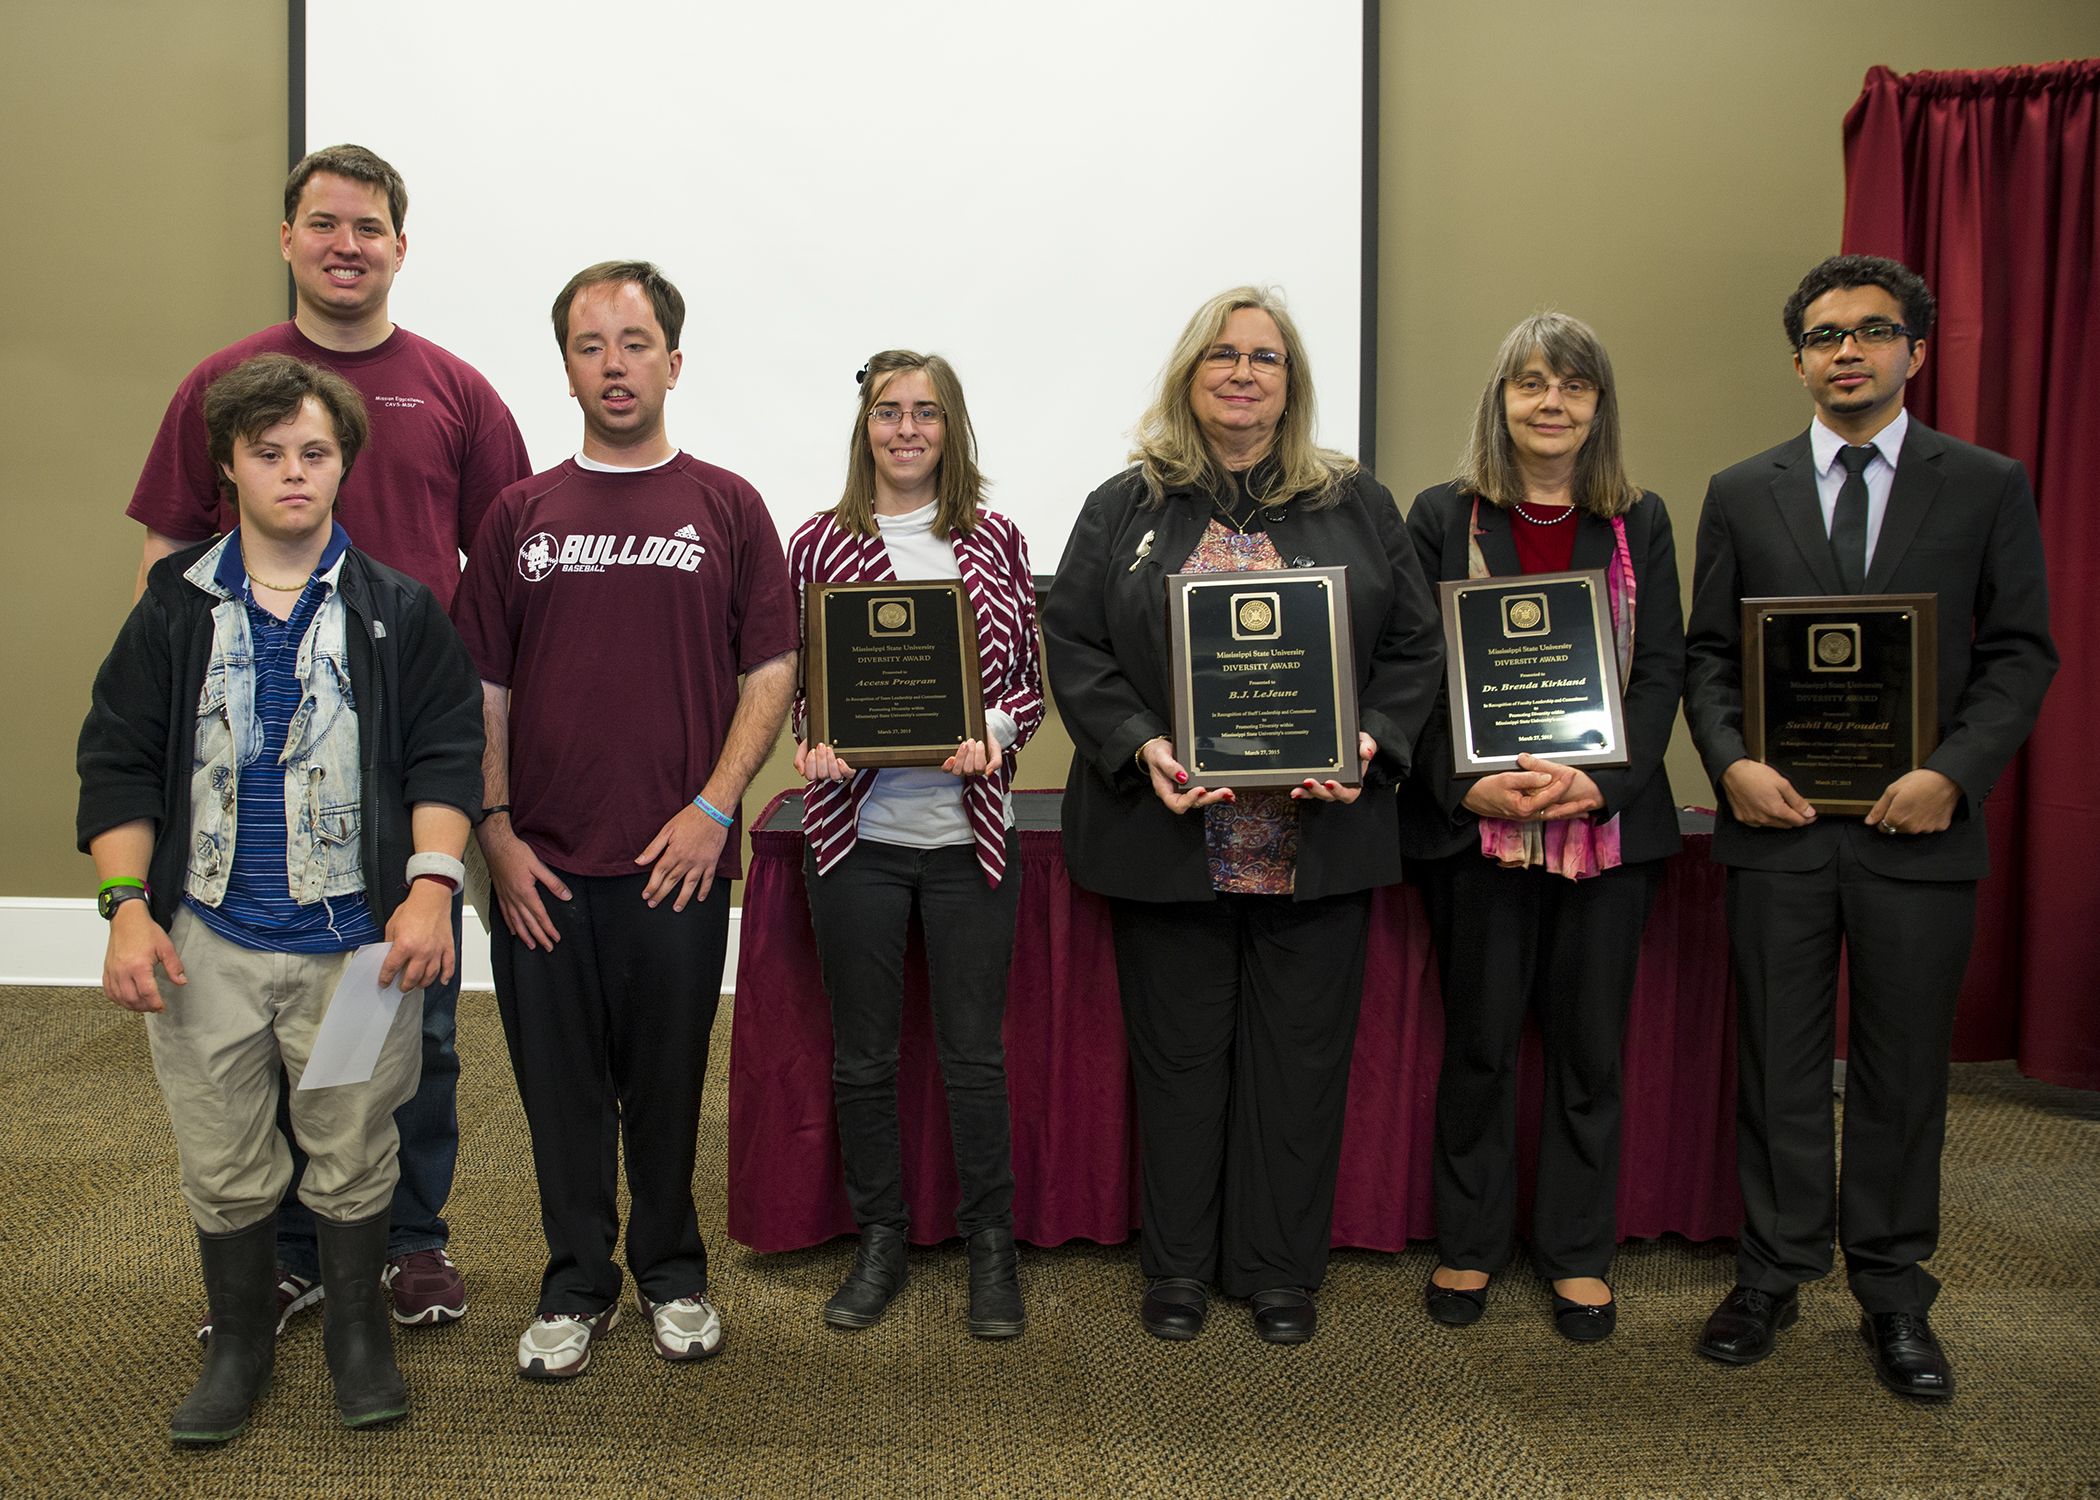 Accepting 2015 Diversity Awards from the MSU President's Commission on the Status of Minorities are, from left, Joe Silvera (front), Daniel Mooney, Wade Sims, and Amanda Byrd, for the campus' ACCESS program; staff member B.J. LeJeune; faculty member Brenda Kirkland; and doctoral student Sushil Raj Poudel.